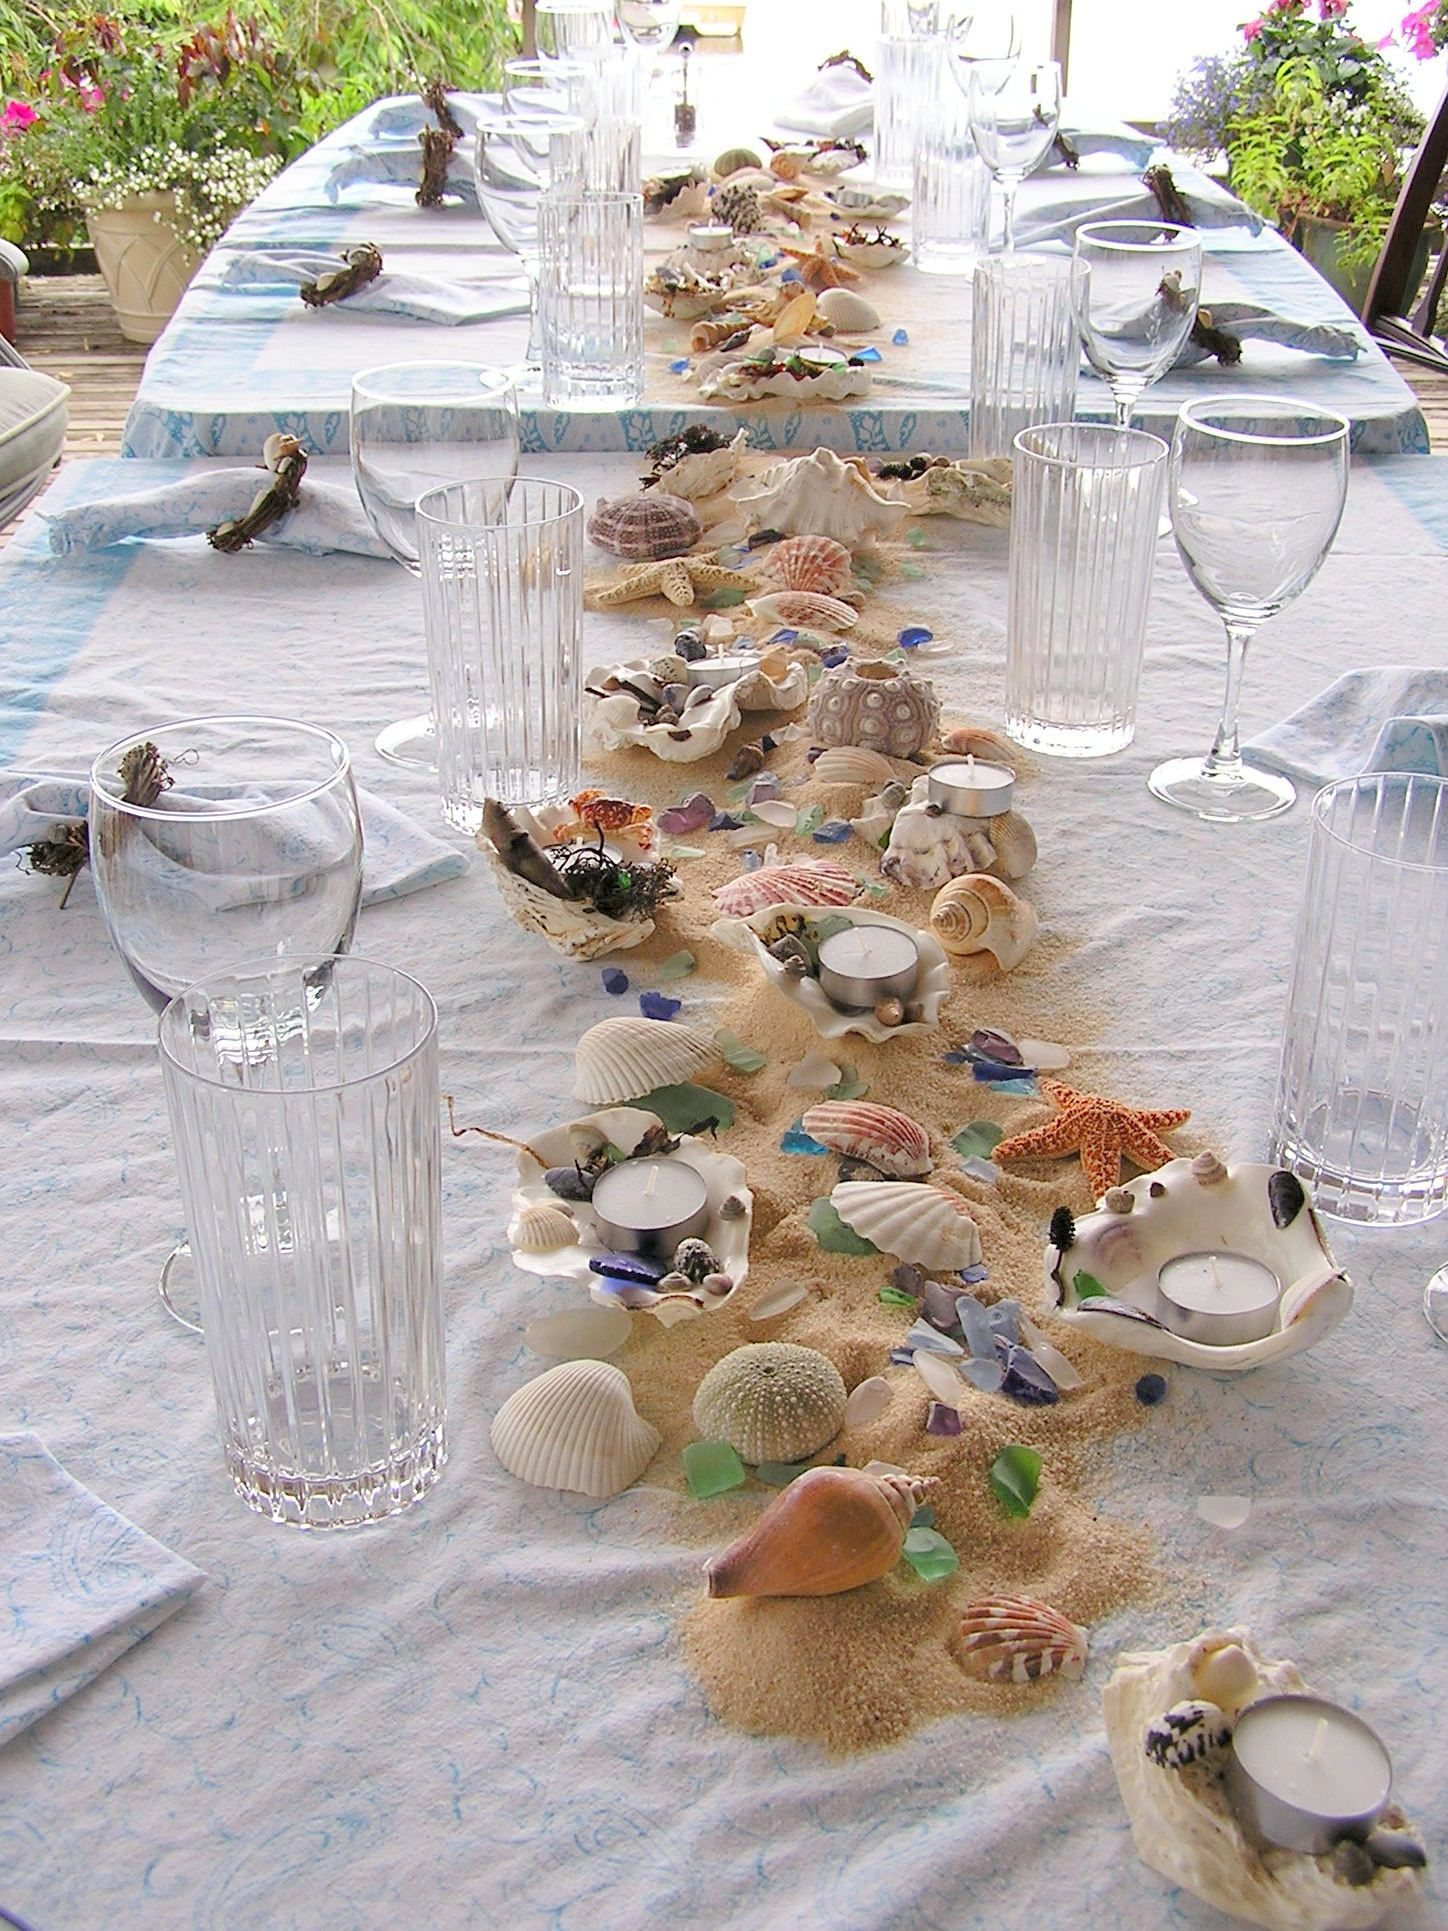 decorations beach wonderful party ideas home new concept layout decor